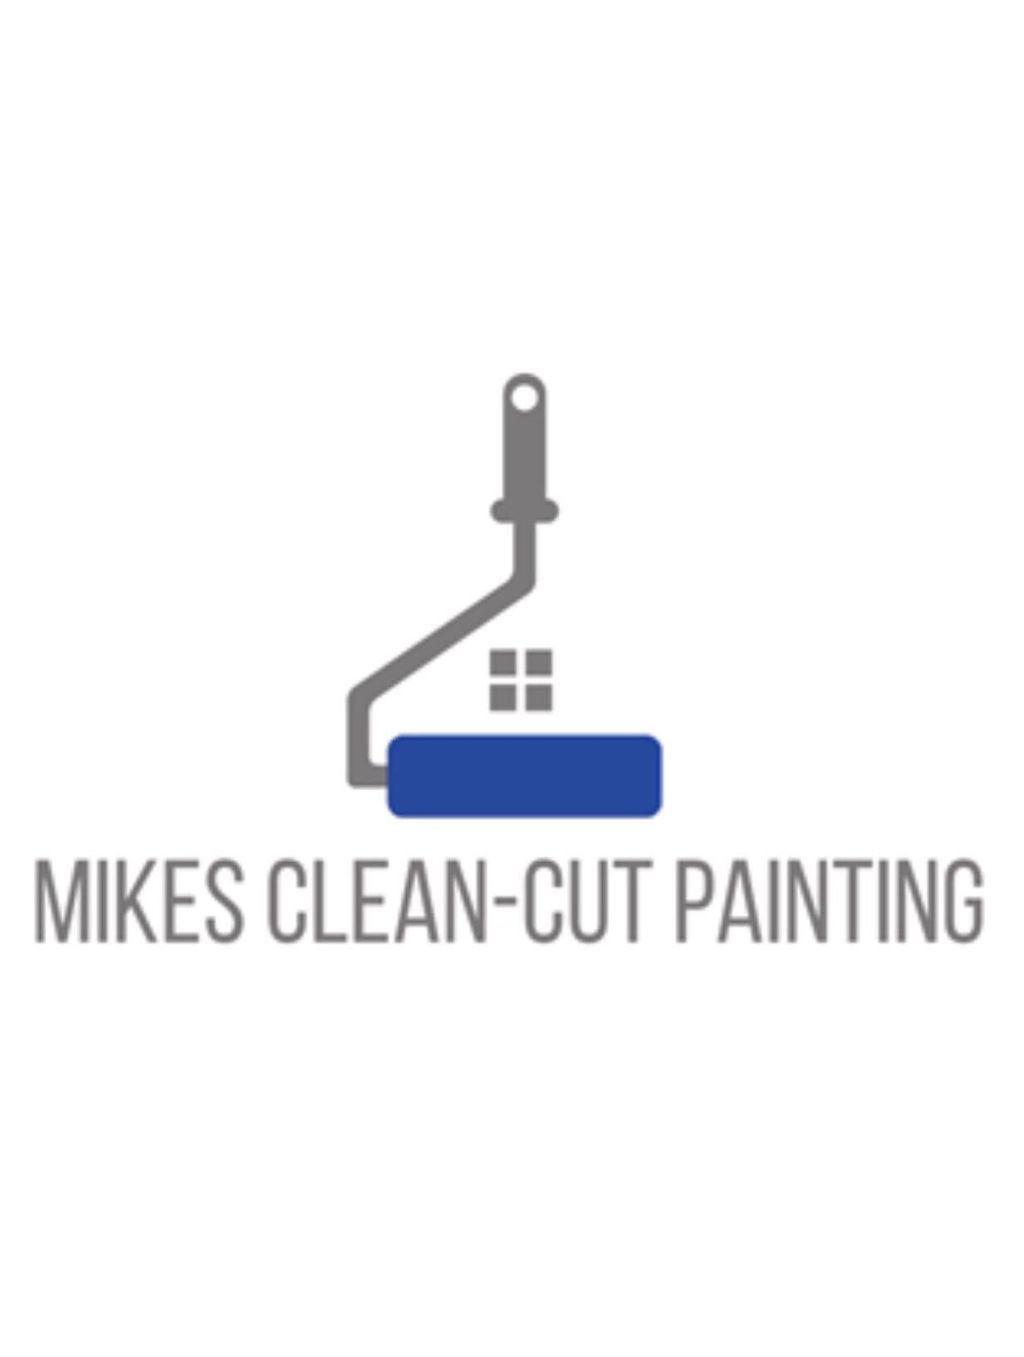 Mike's Clean Cut Painting